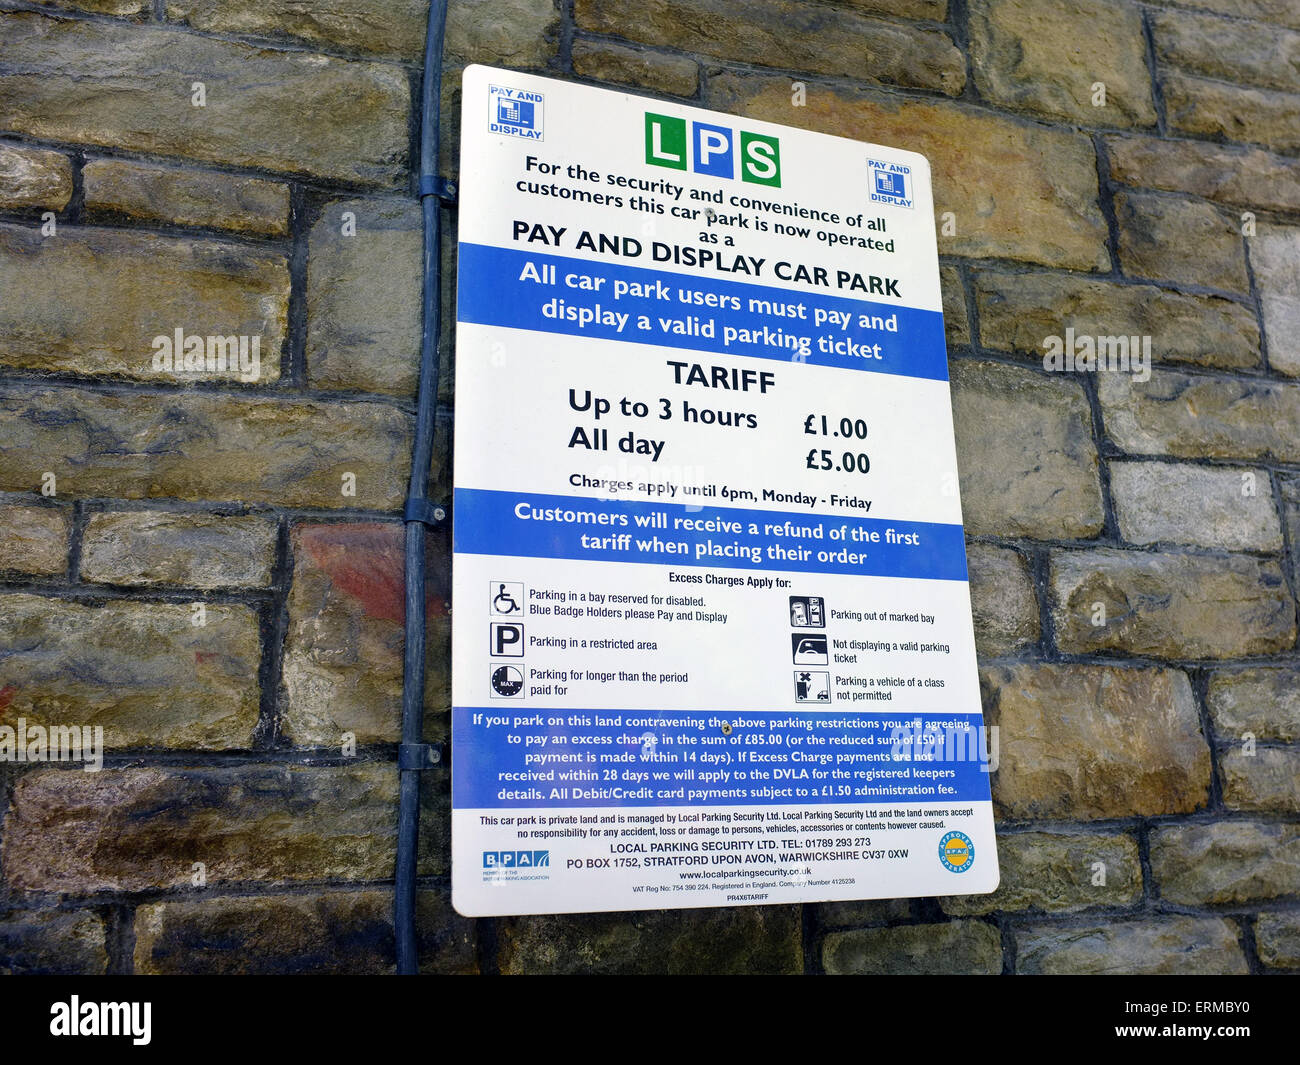 A pay and display parking sign in Bristol. - Stock Image